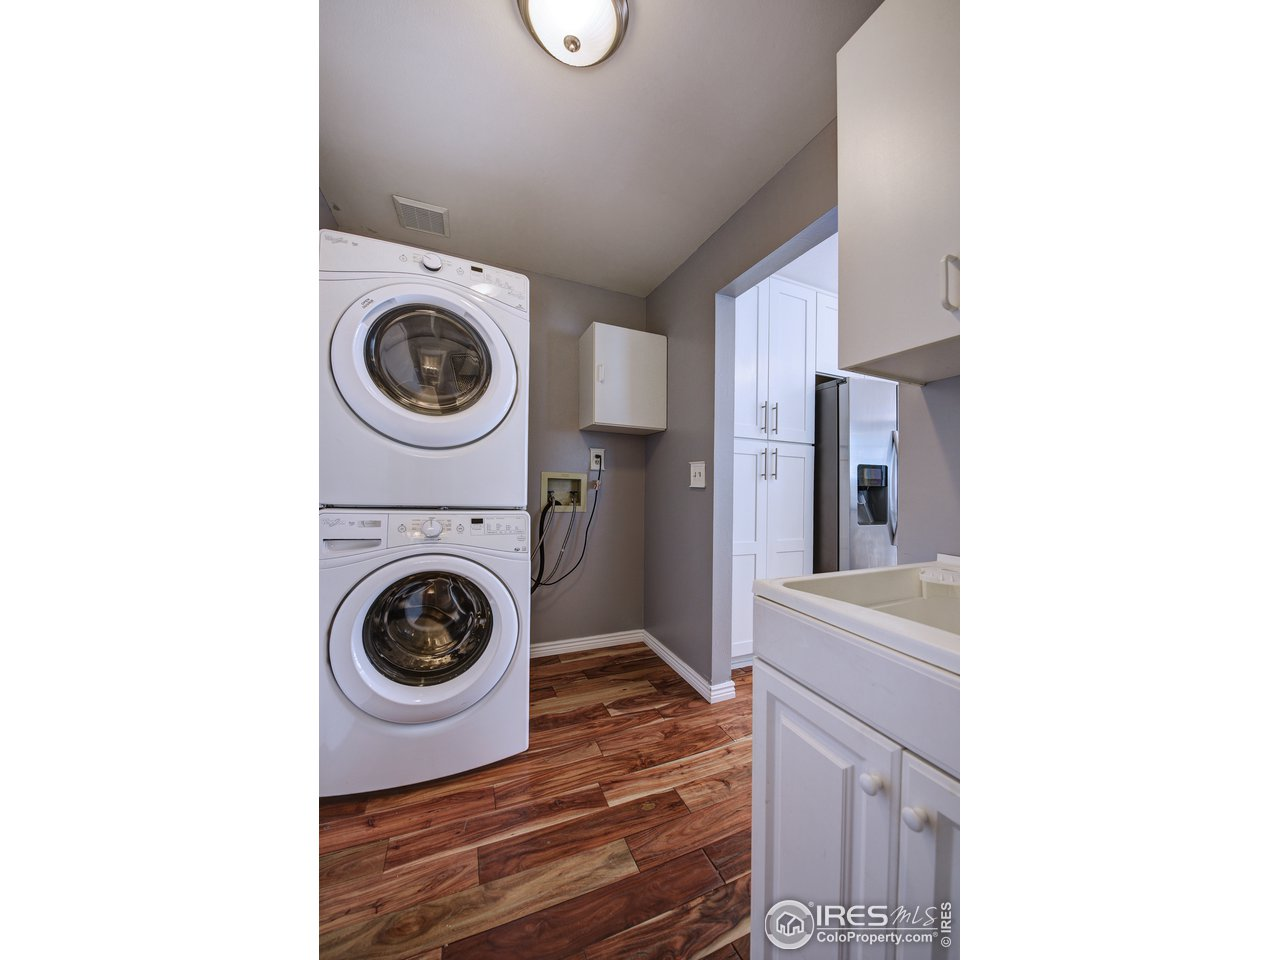 Washer/Dryer included, laundry sink also!